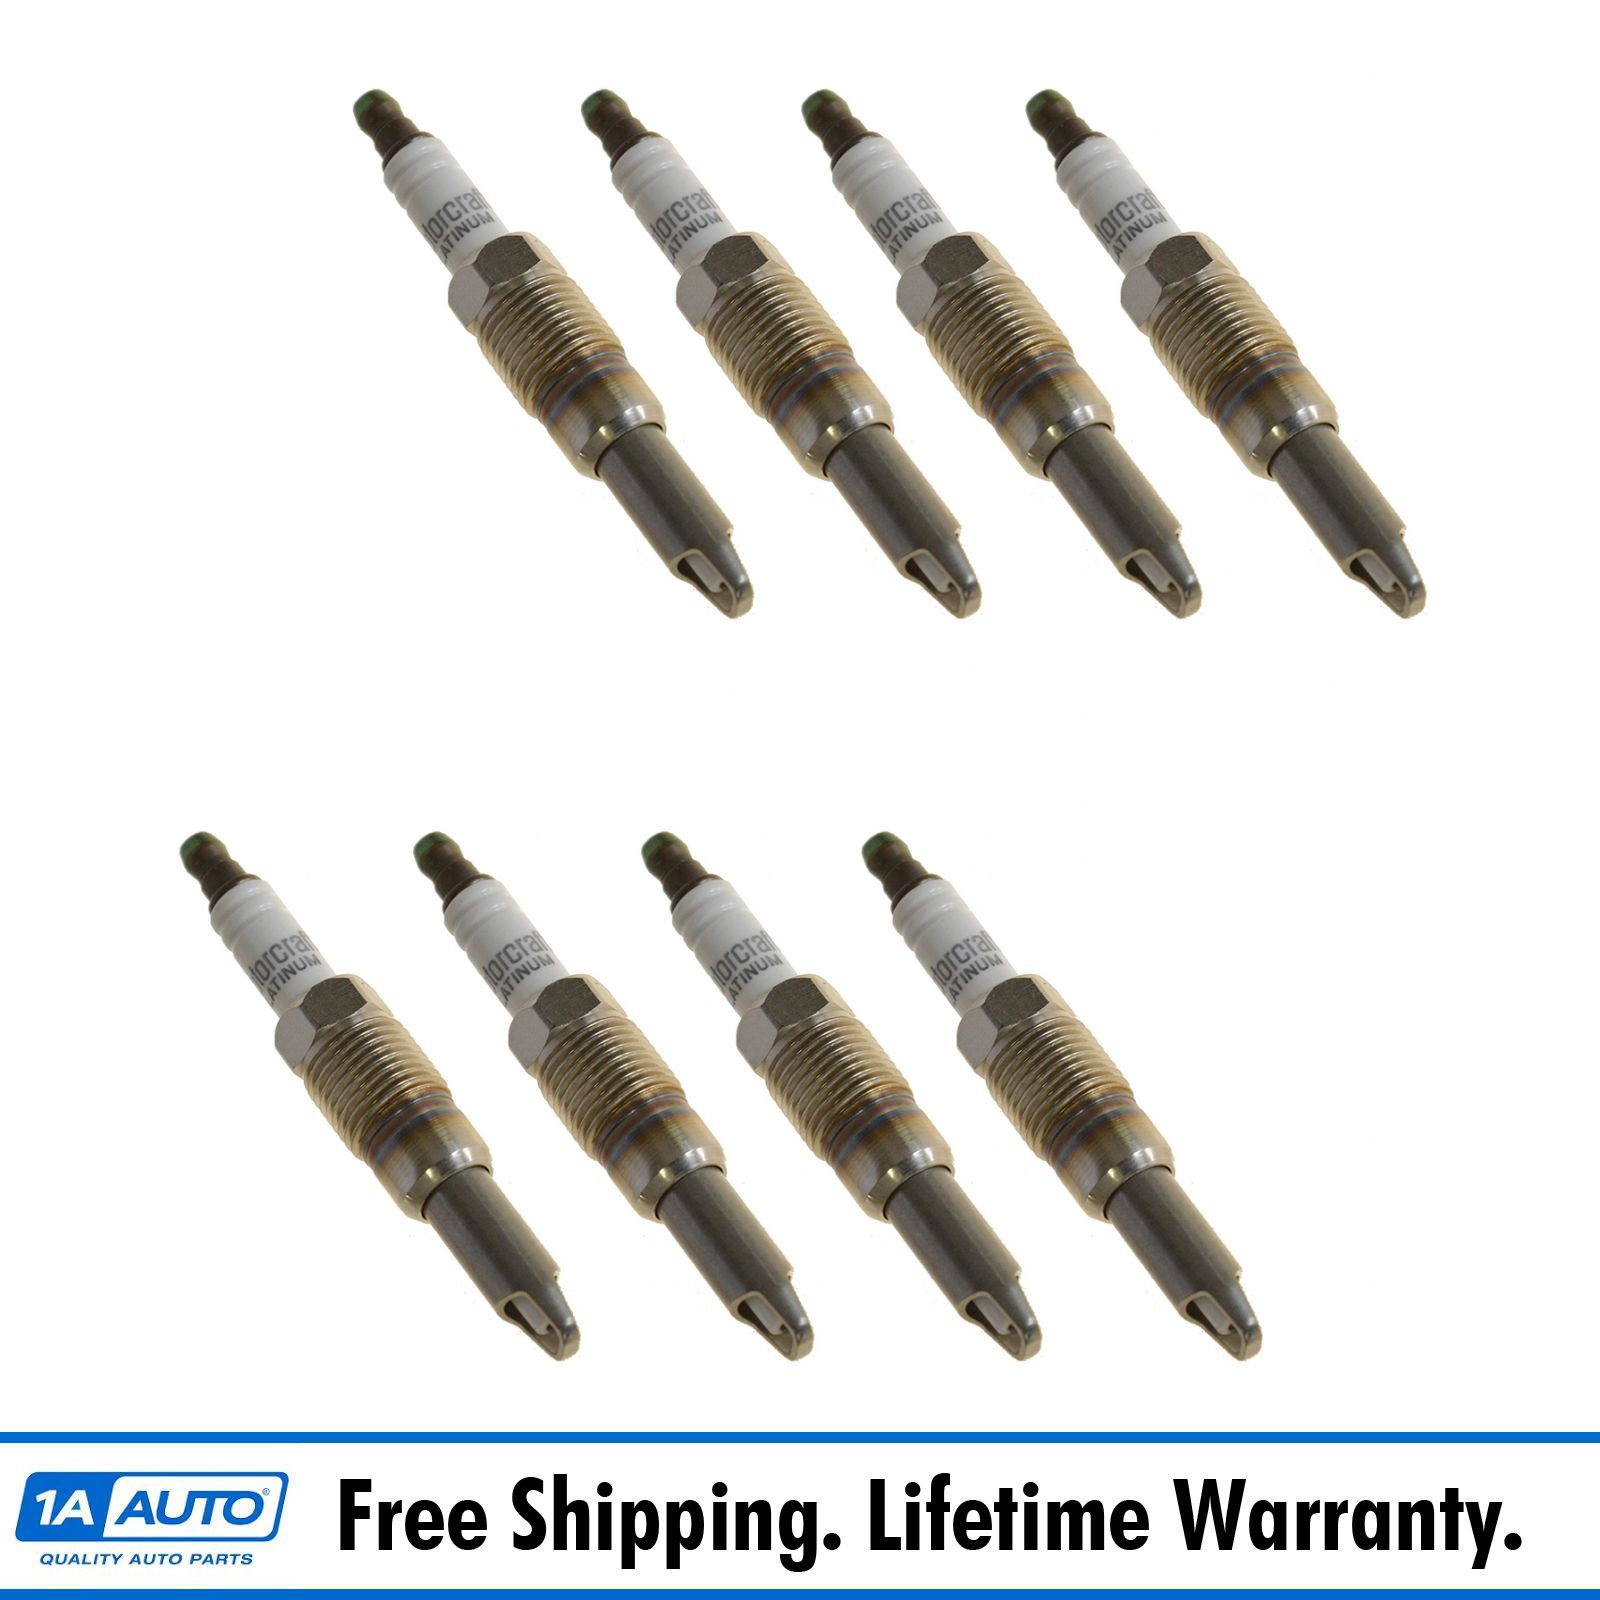 For Ford F-150 Expedition Lincoln Navigator Set of 8 Spark Plugs Genuine OEM